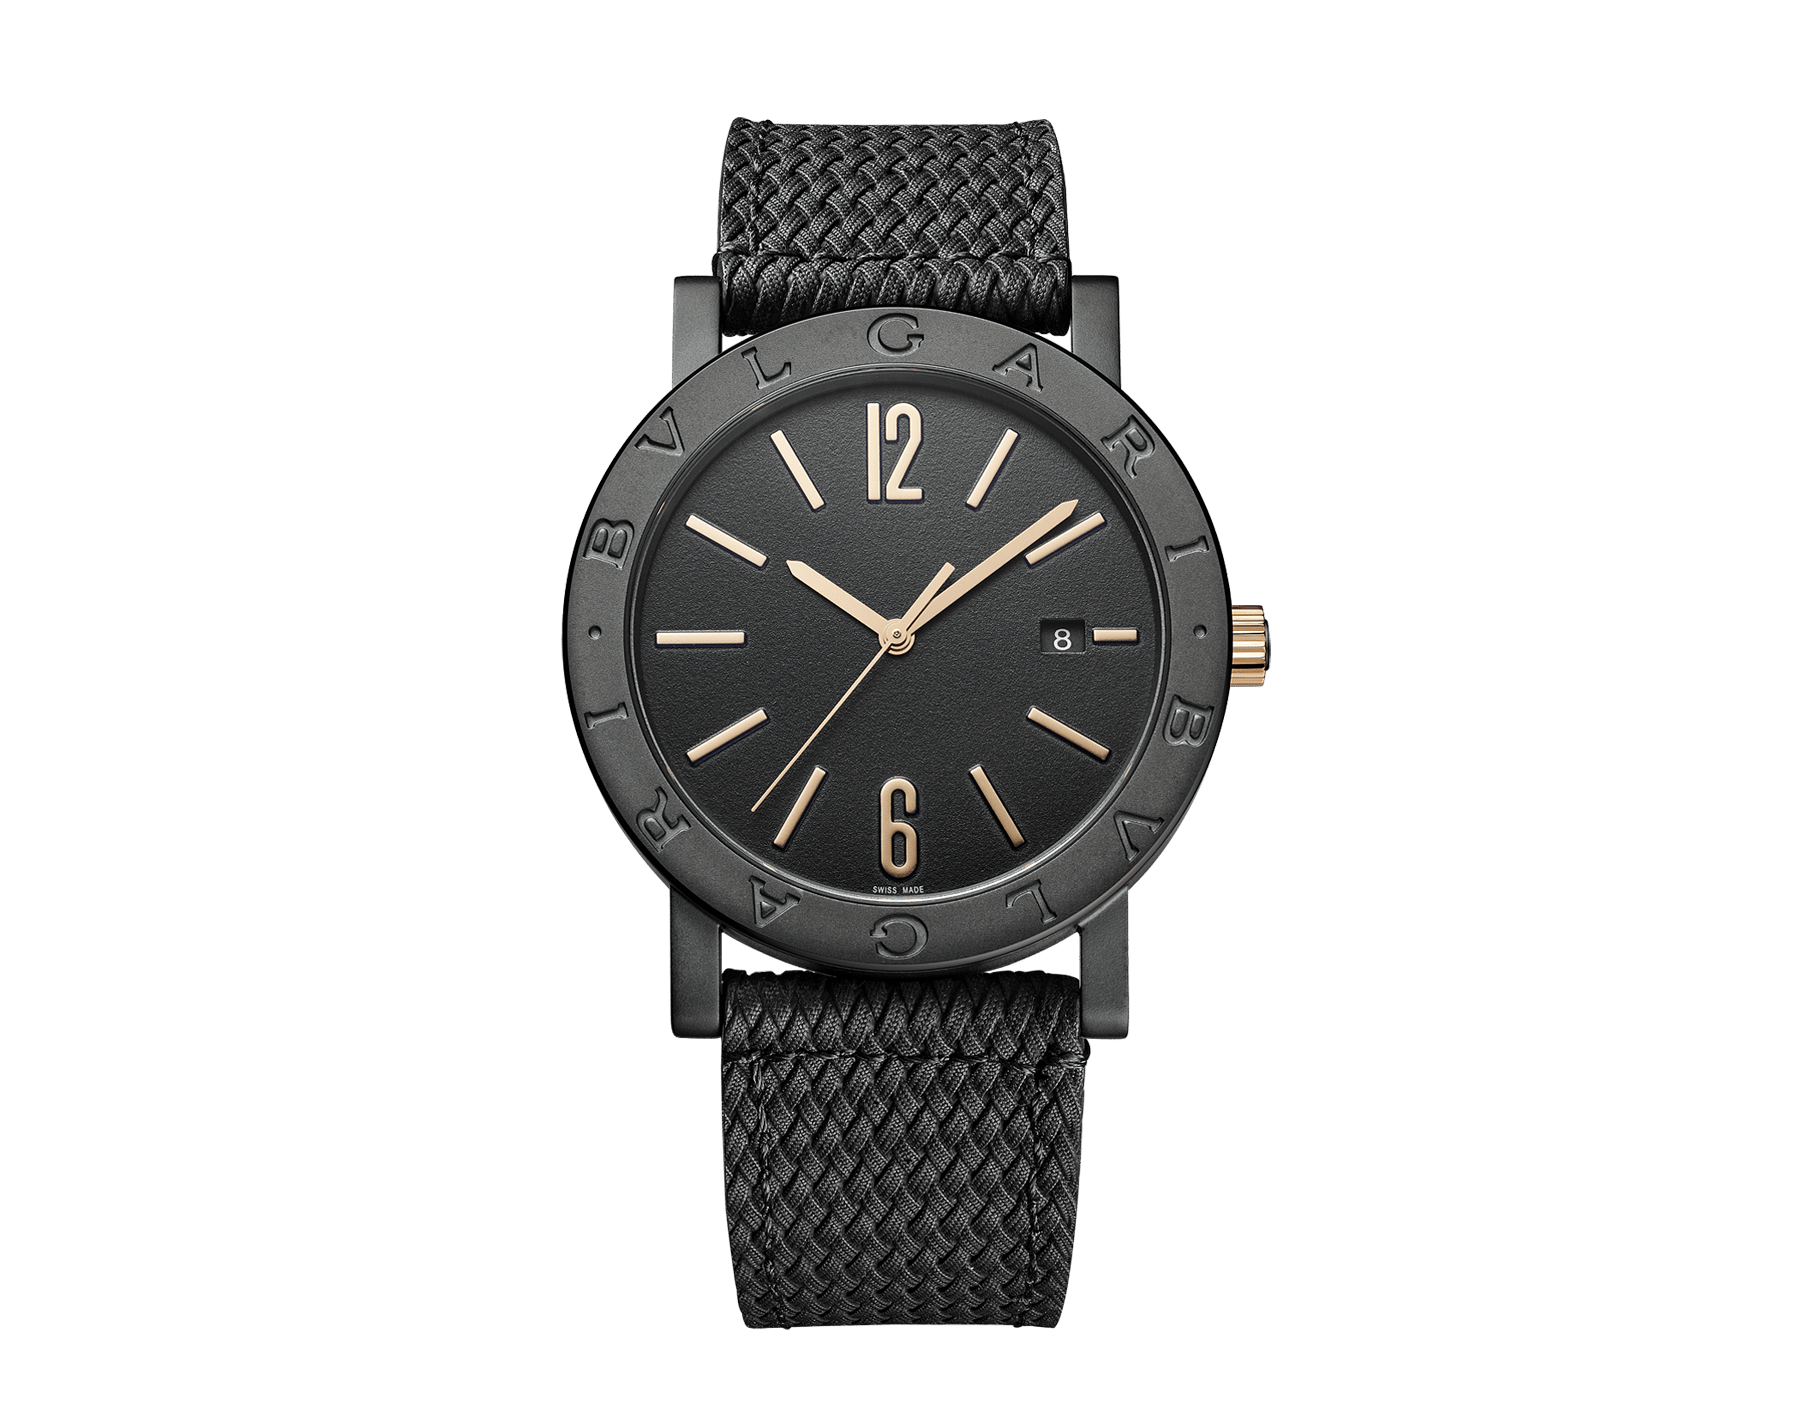 BVLGARI BVLGARI Solotempo watch with mechanical manufacture movement, automatic winding and date, stainless steel case treated with black Diamond Like Carbon and bezel engraved with double logo, black dial and black rubber bracelet 102929 image 1